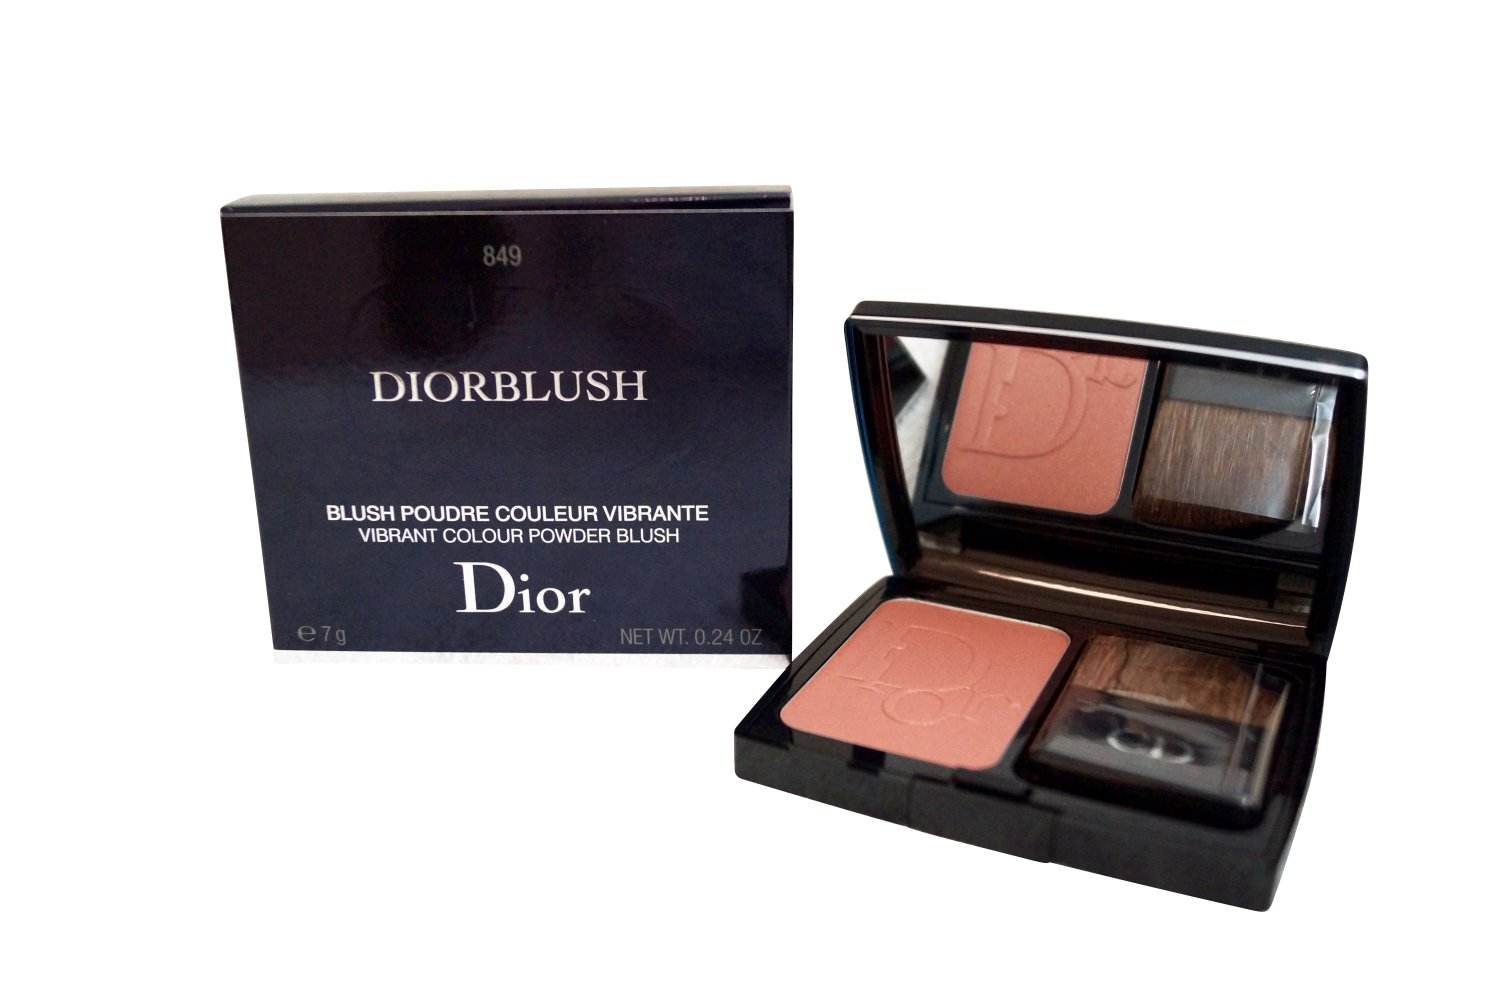 Dior Diorblush Vibrant Colour Powder Blush 849 Mimi Bronze